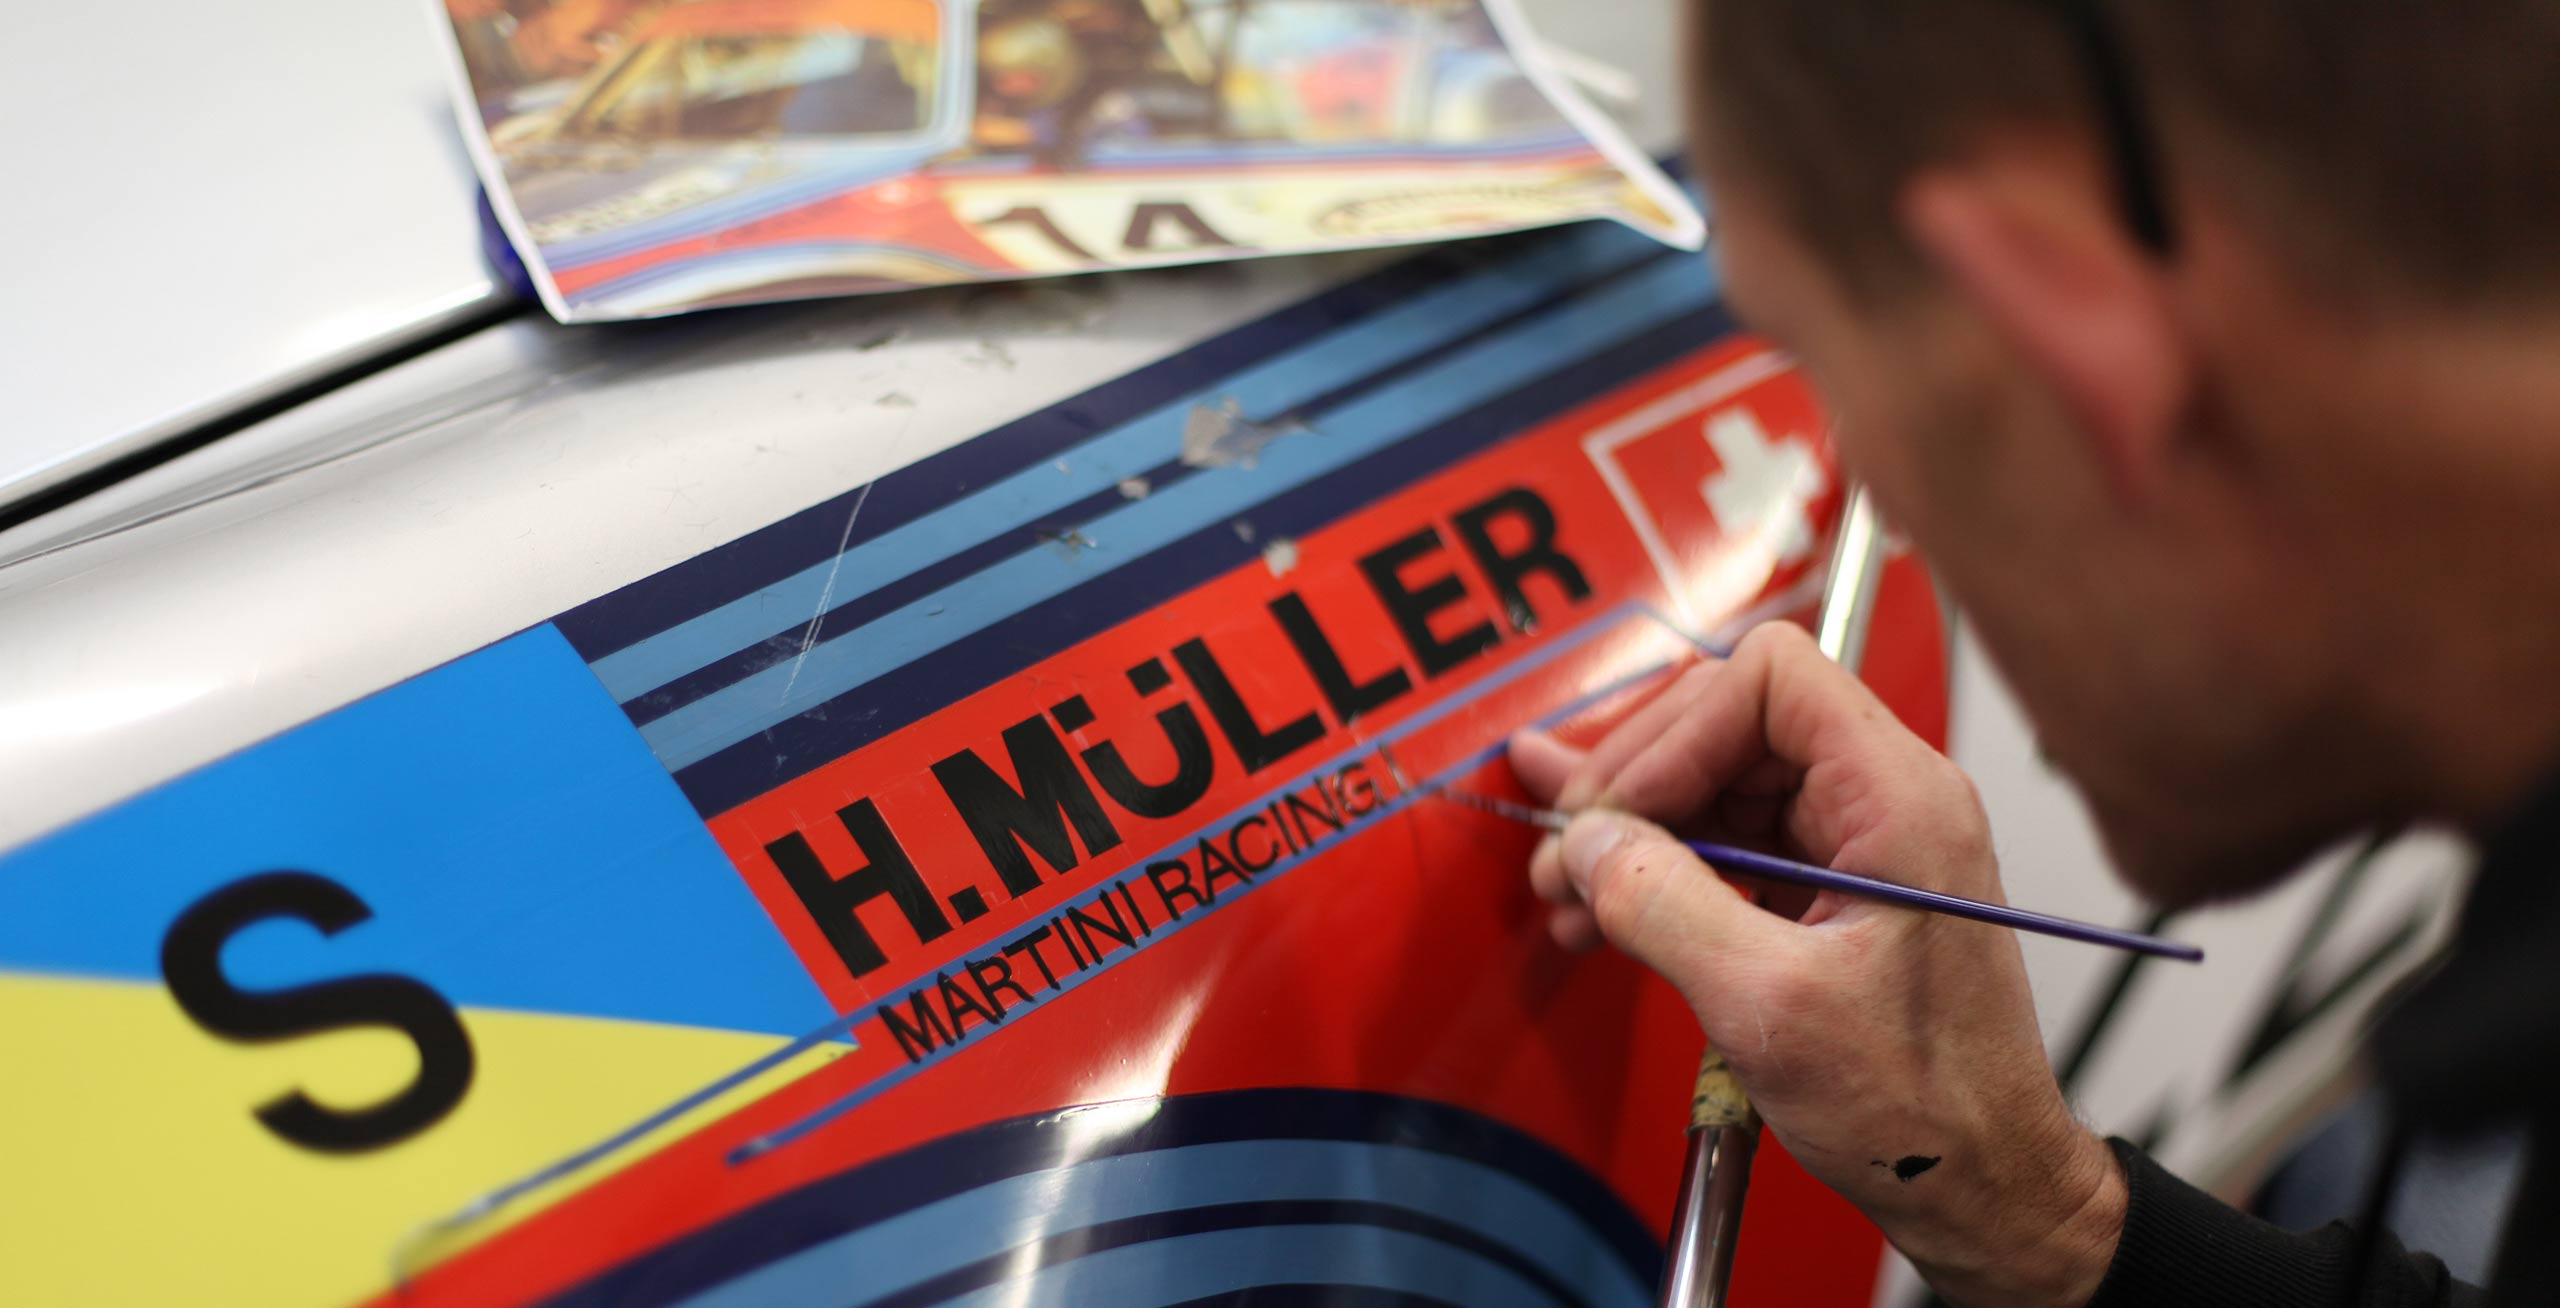 Maxed-Page Historic Porsche Specialists UK restoration